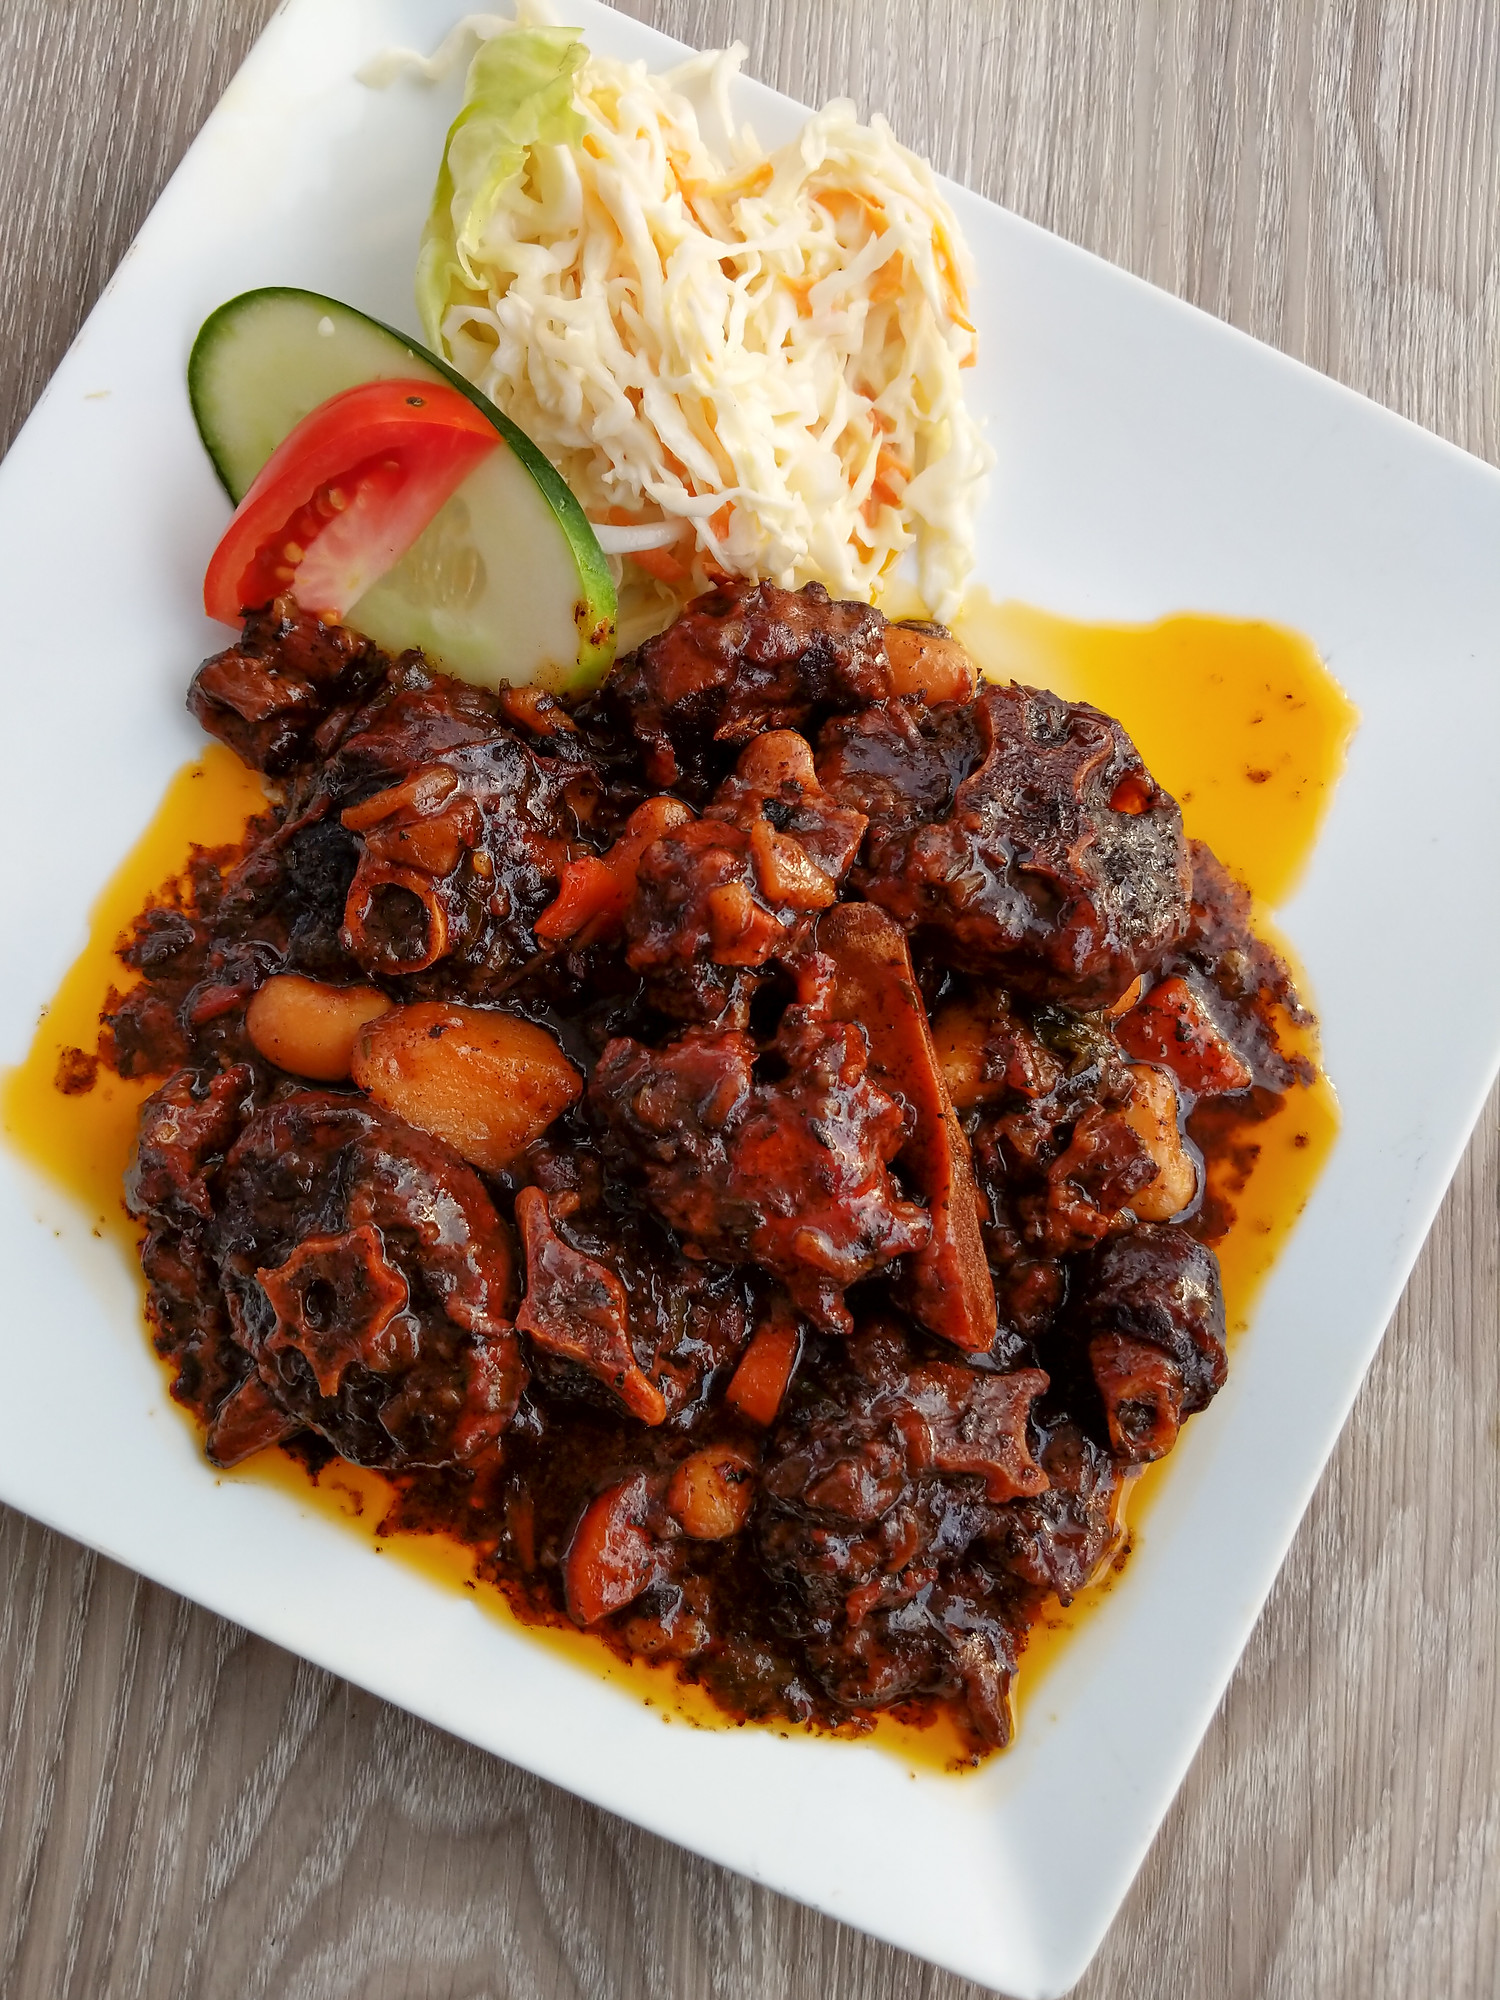 Oxtail is just one traditional Jamaican food you need to try. The ultimate guide for what to eat in Jamaica, our best picks for 27 dishes, 6 desserts and 12 drinks you won't want to leave the island without trying.